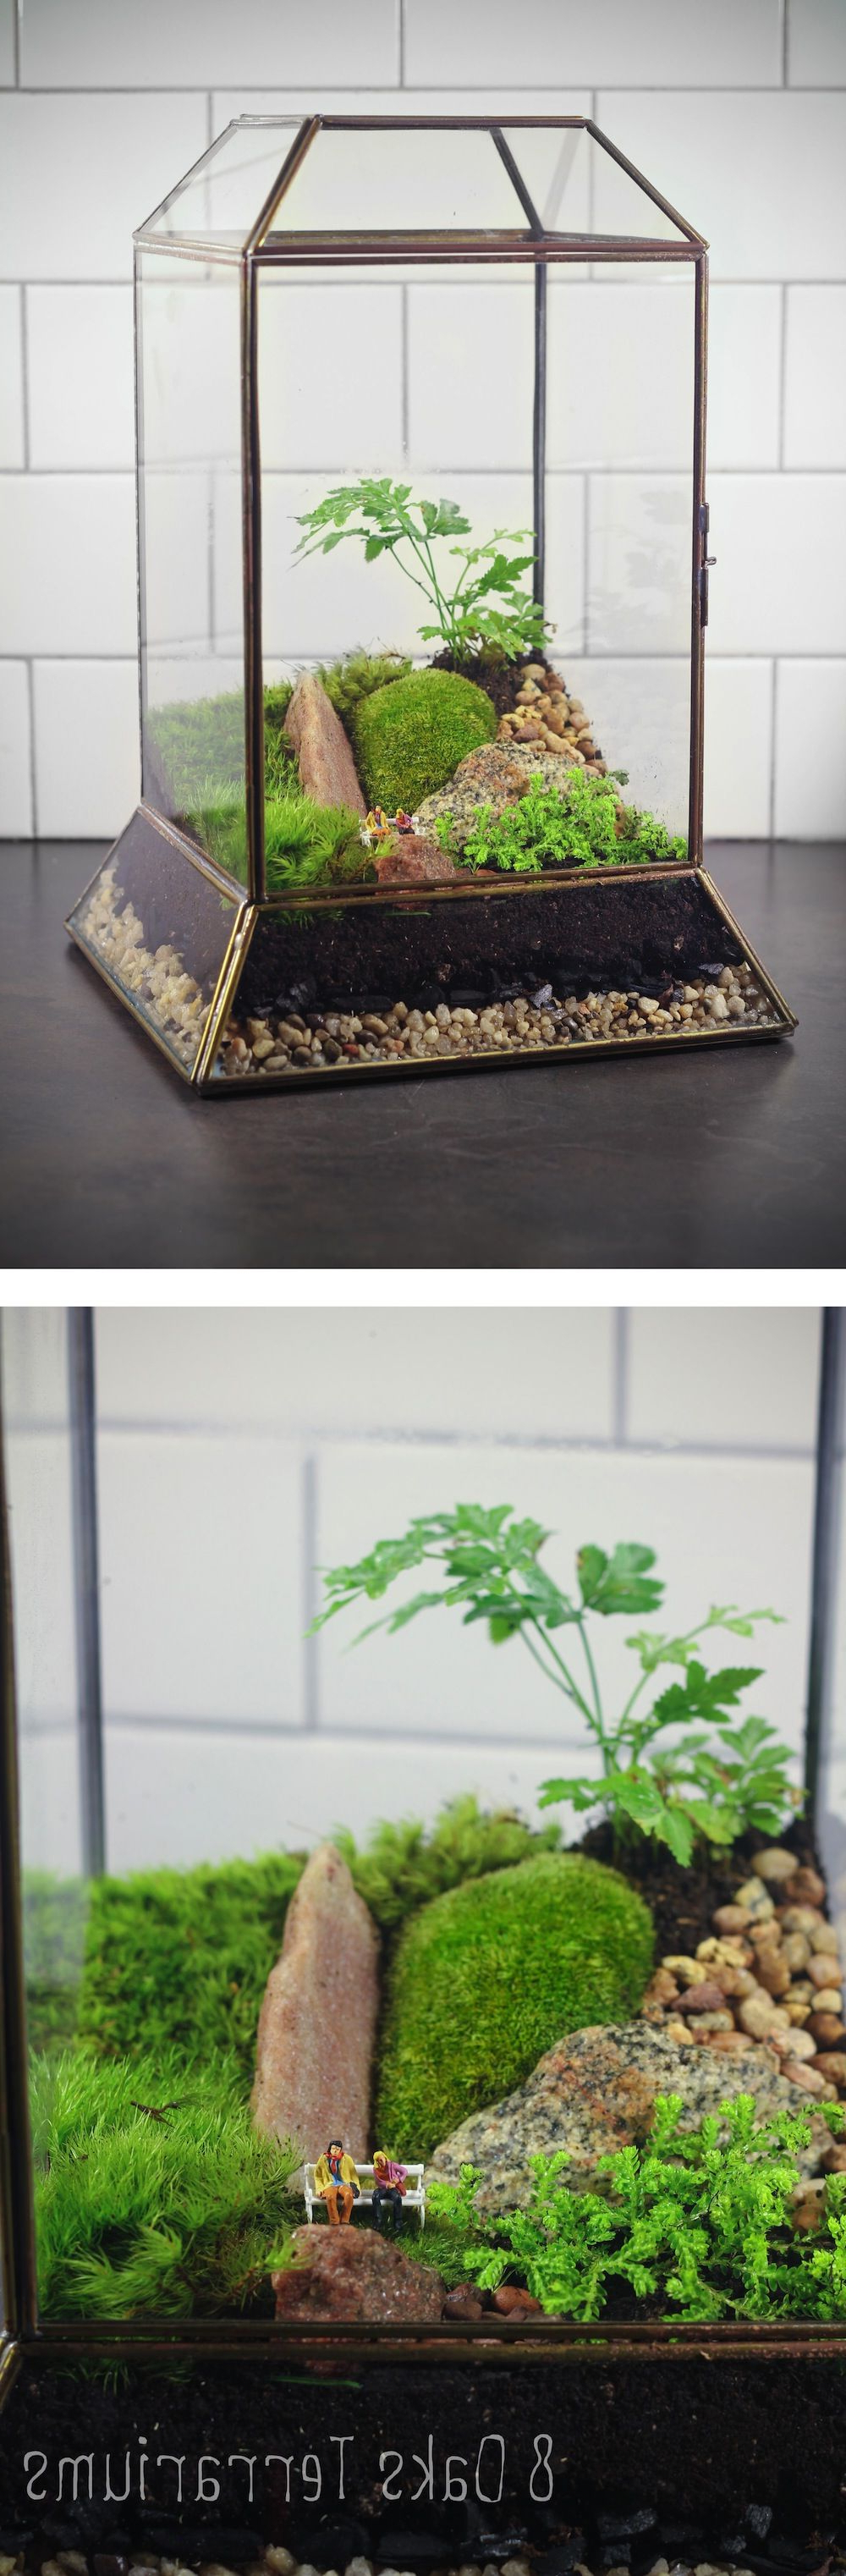 Vintage Leaded Glass Terrarium With A Variety Of Mosses